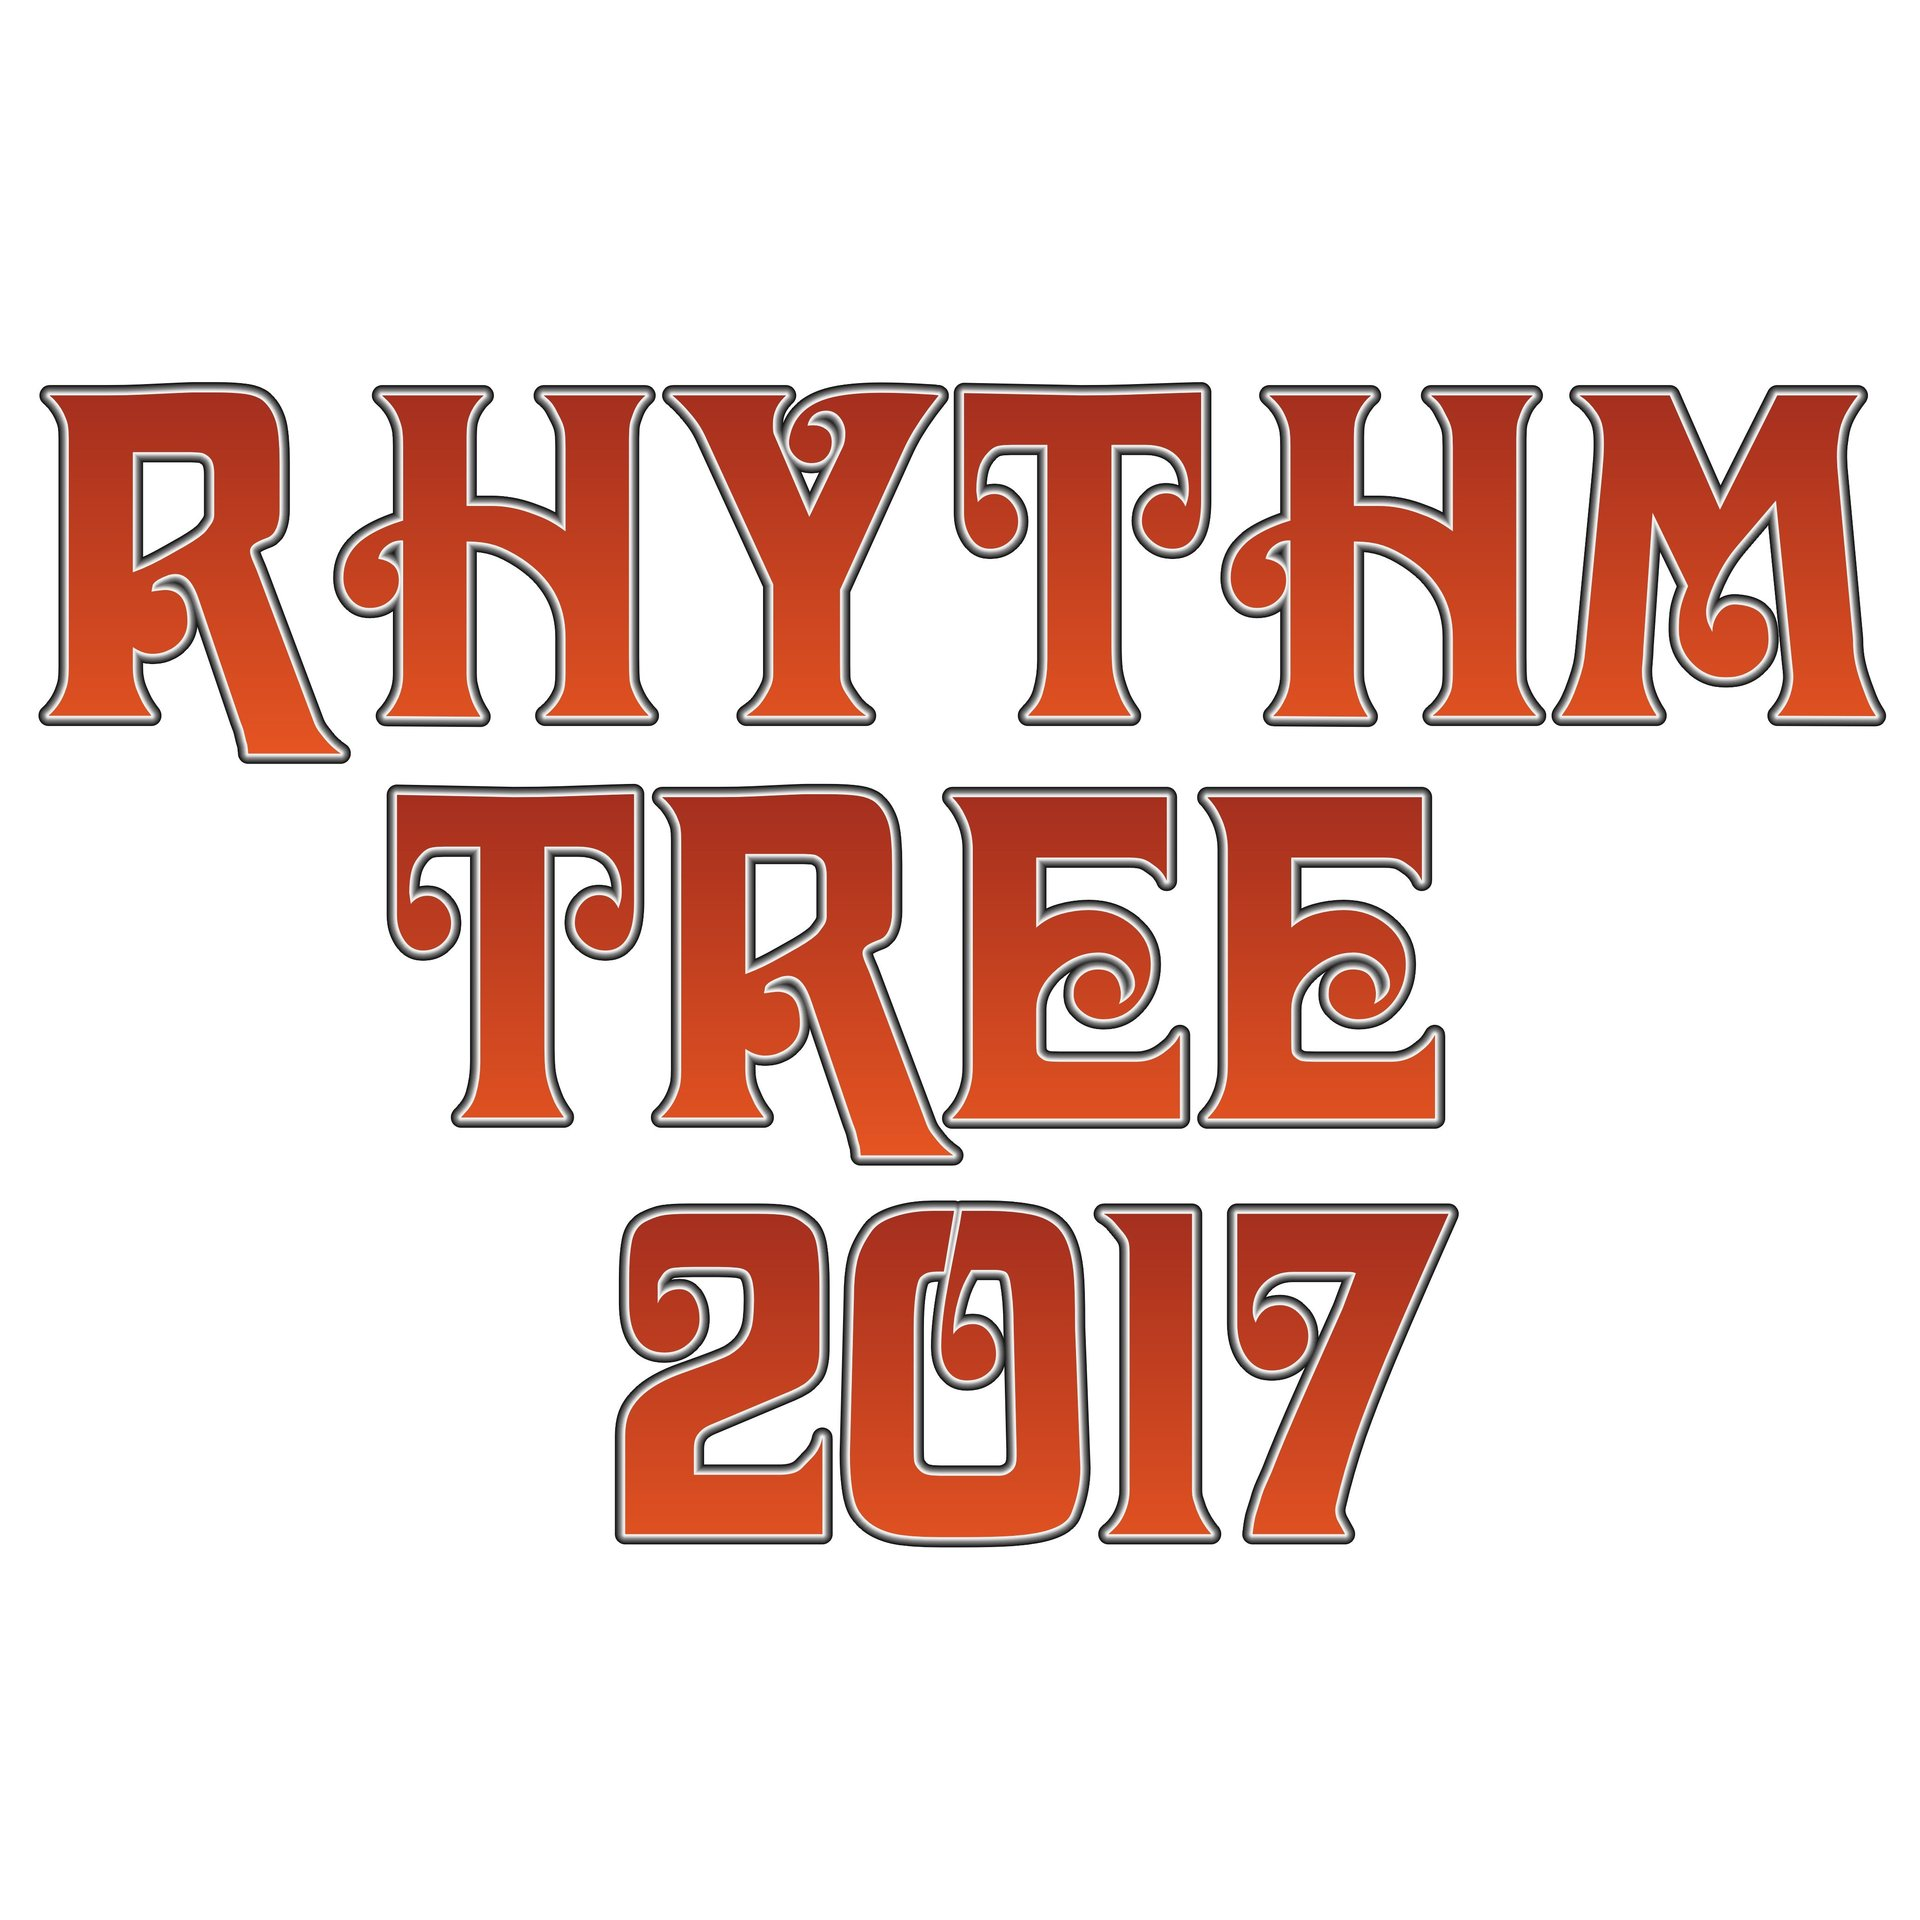 Rhythmtree Festival  is a customer of NDL Event Power Solutions